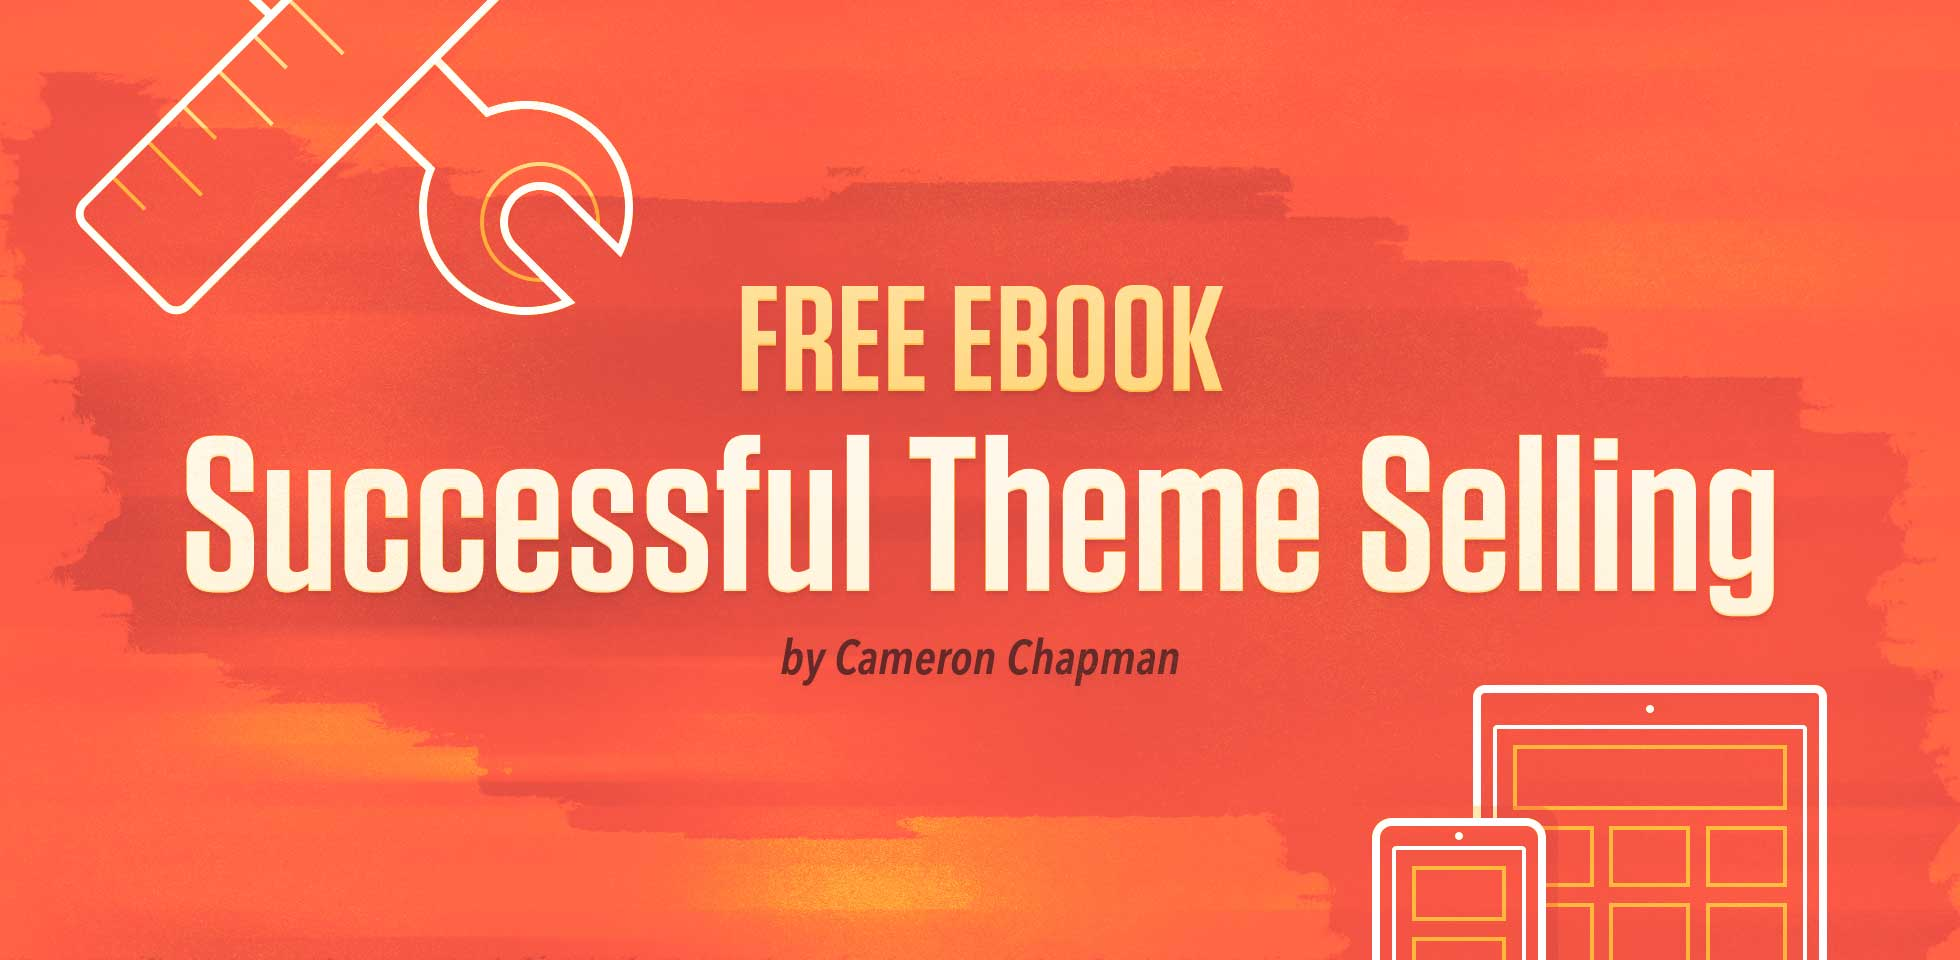 Free eBook: Successful Theme Selling